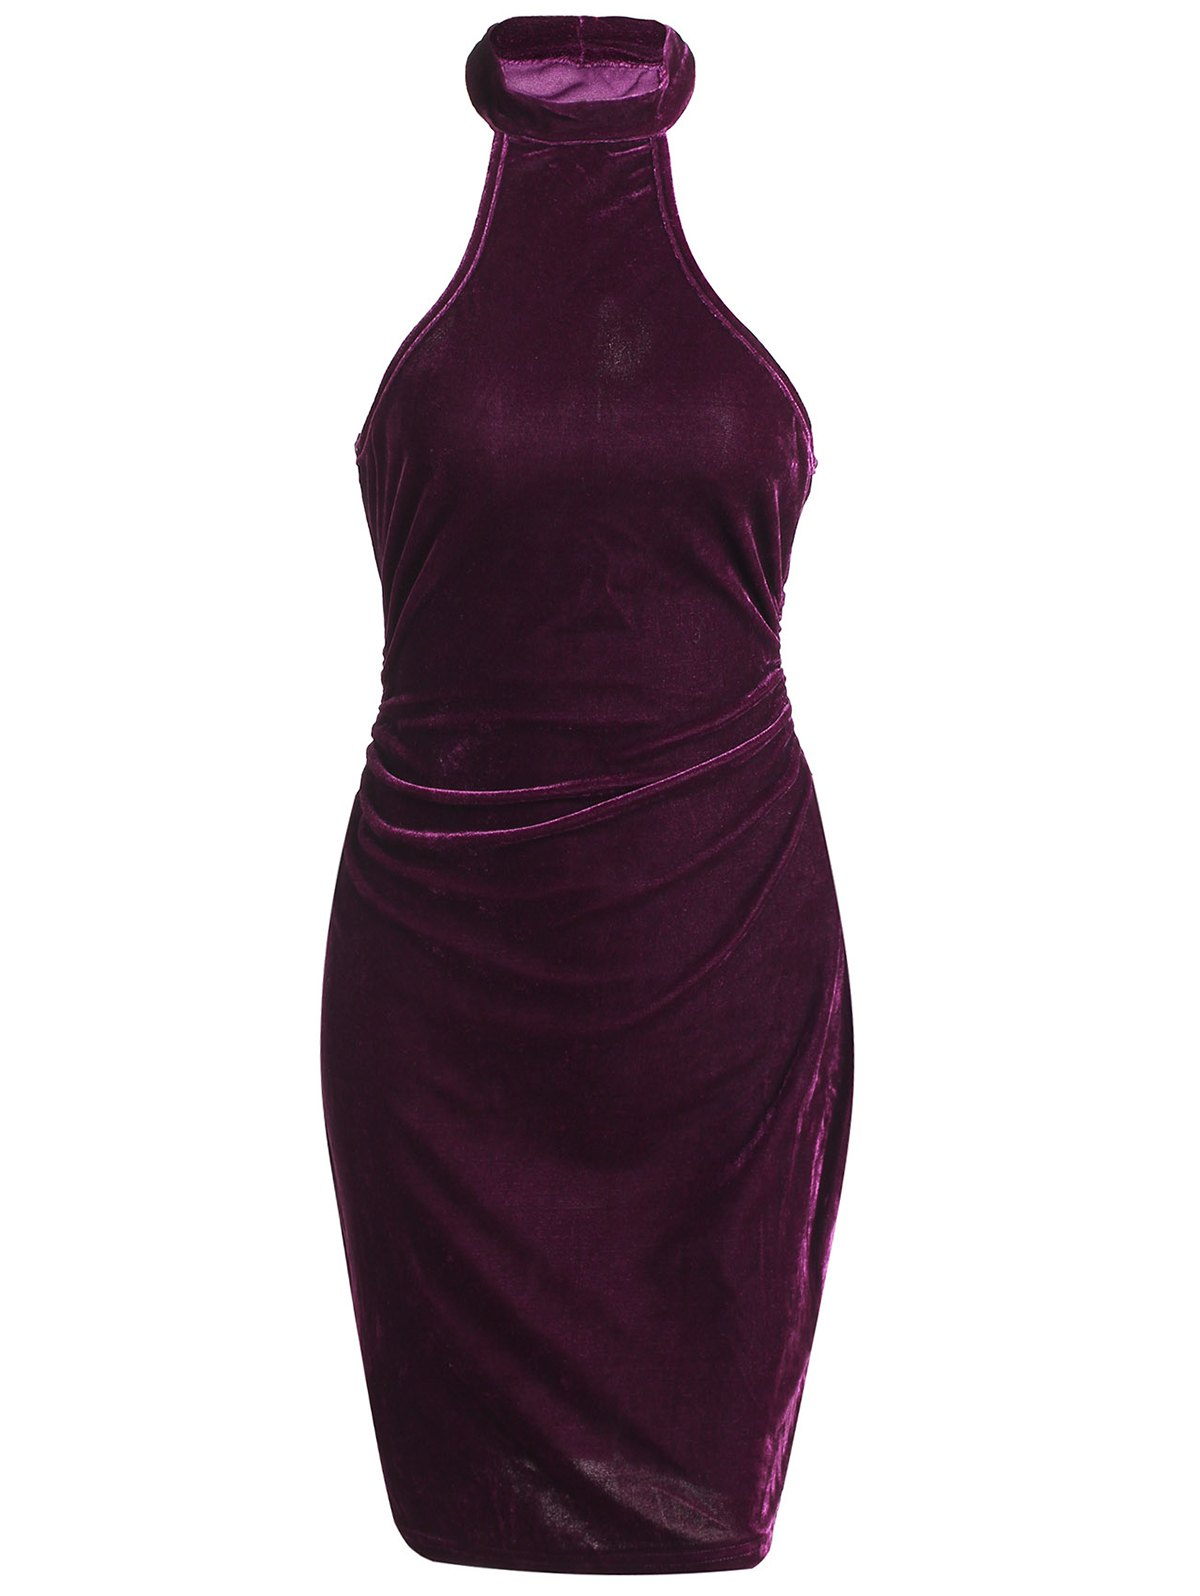 Fashion Sleeveless Stand-Up Neck Pure Color Women's Club Dress